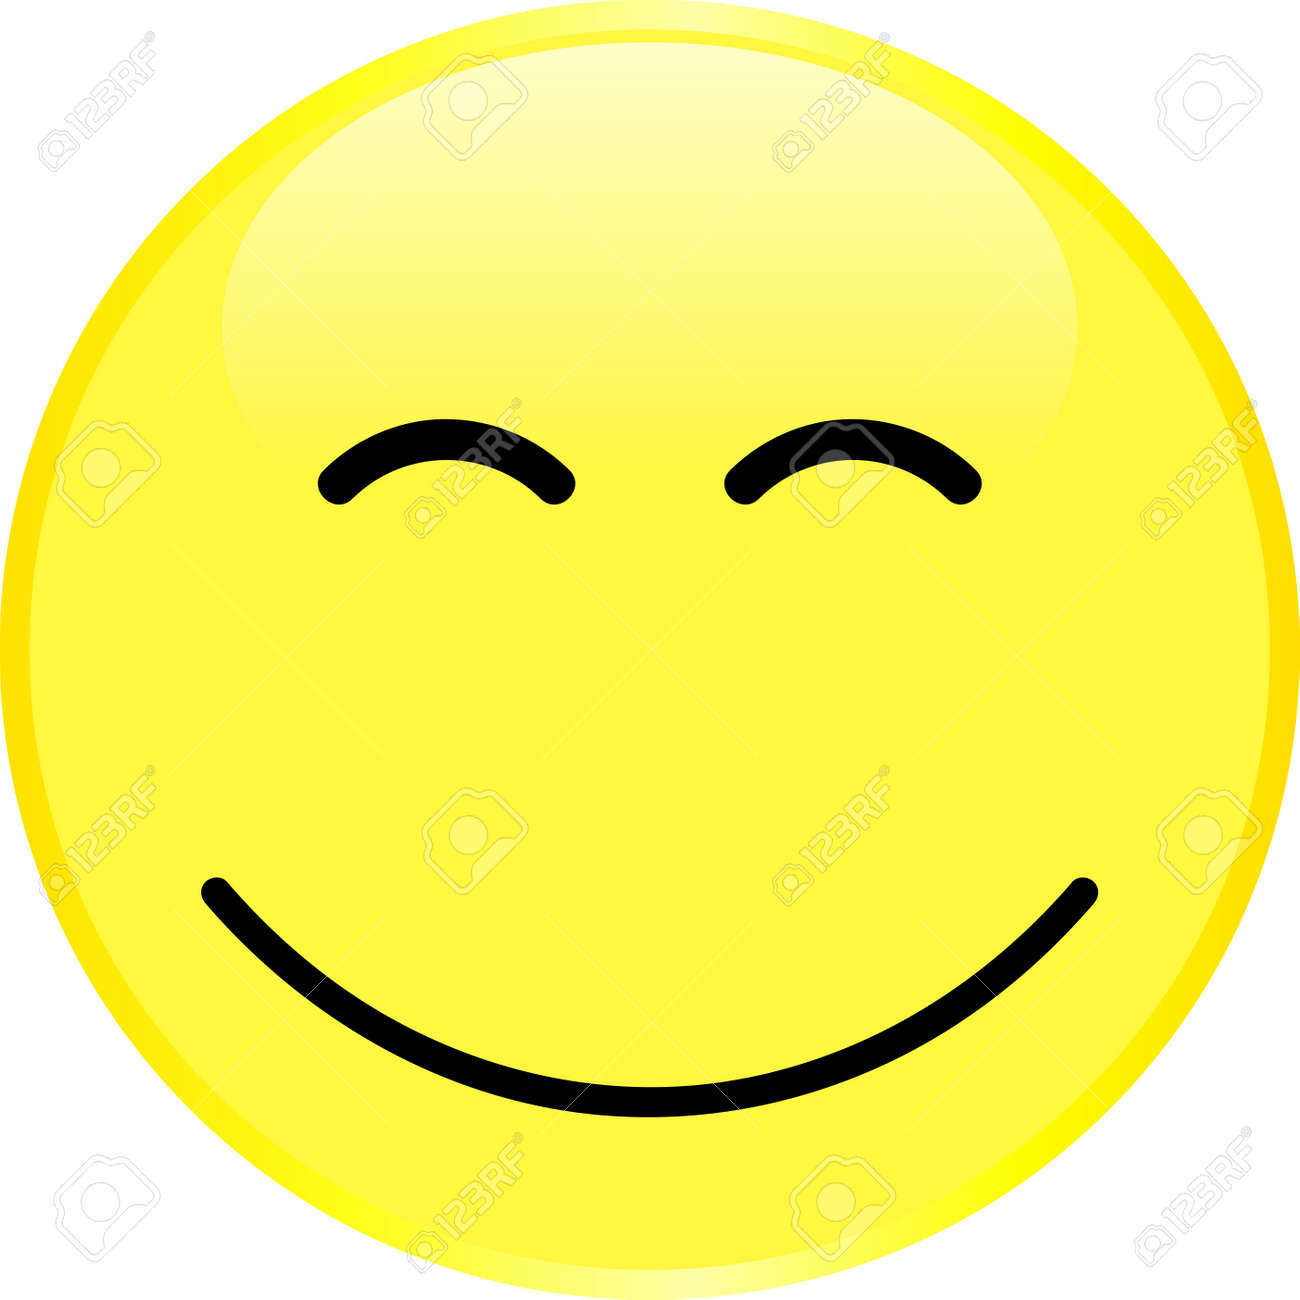 smiley face with a positive emotion vector royalty free cliparts rh 123rf com vector smiley face free download vector smiley face pack